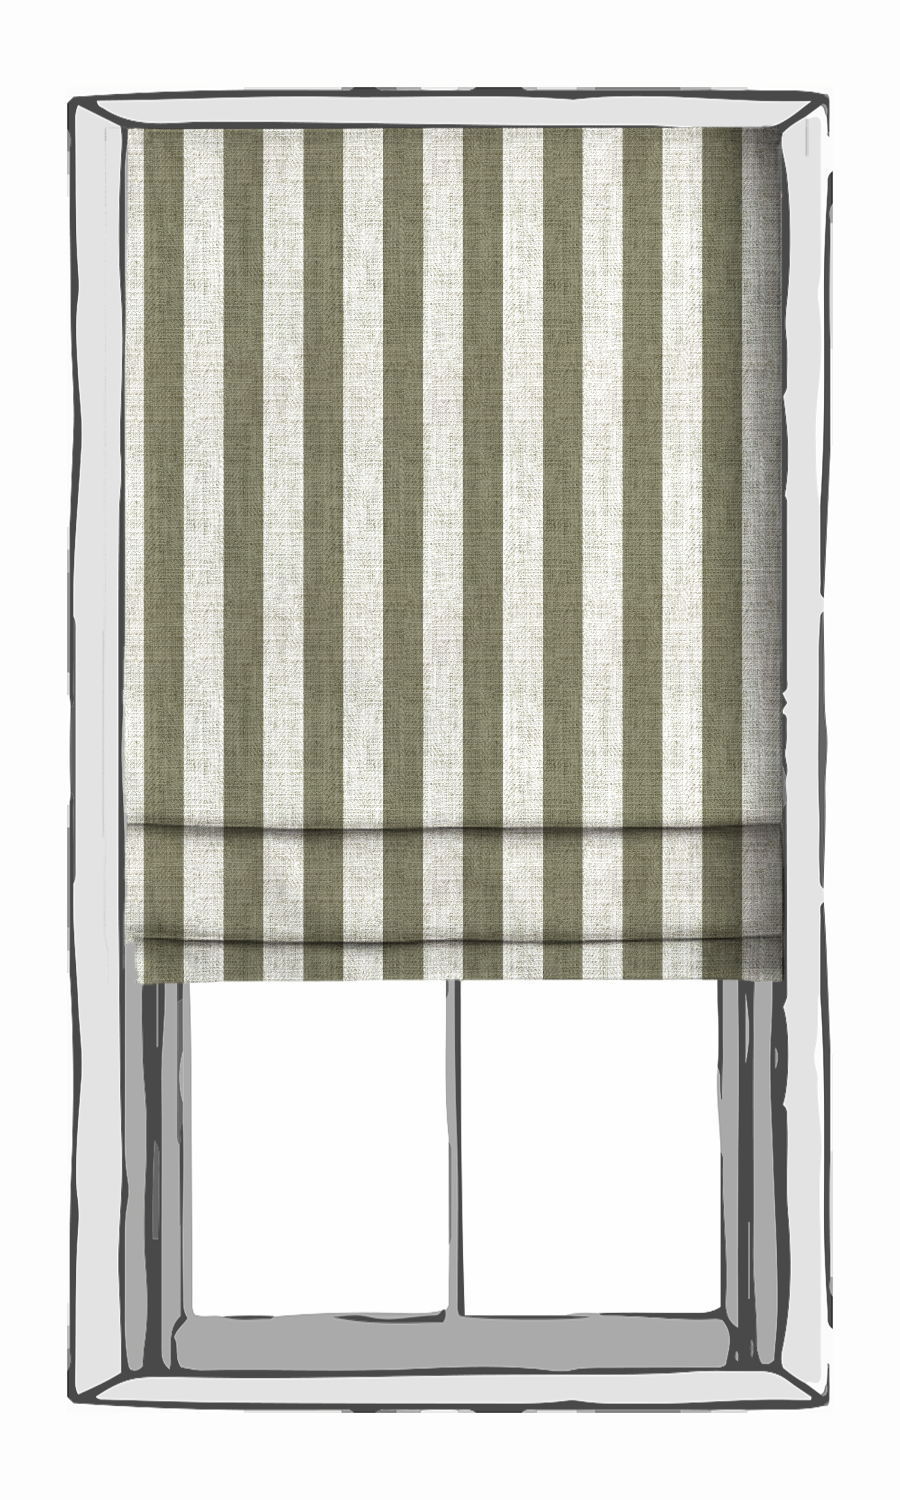 Green and White Striped Roman Blind